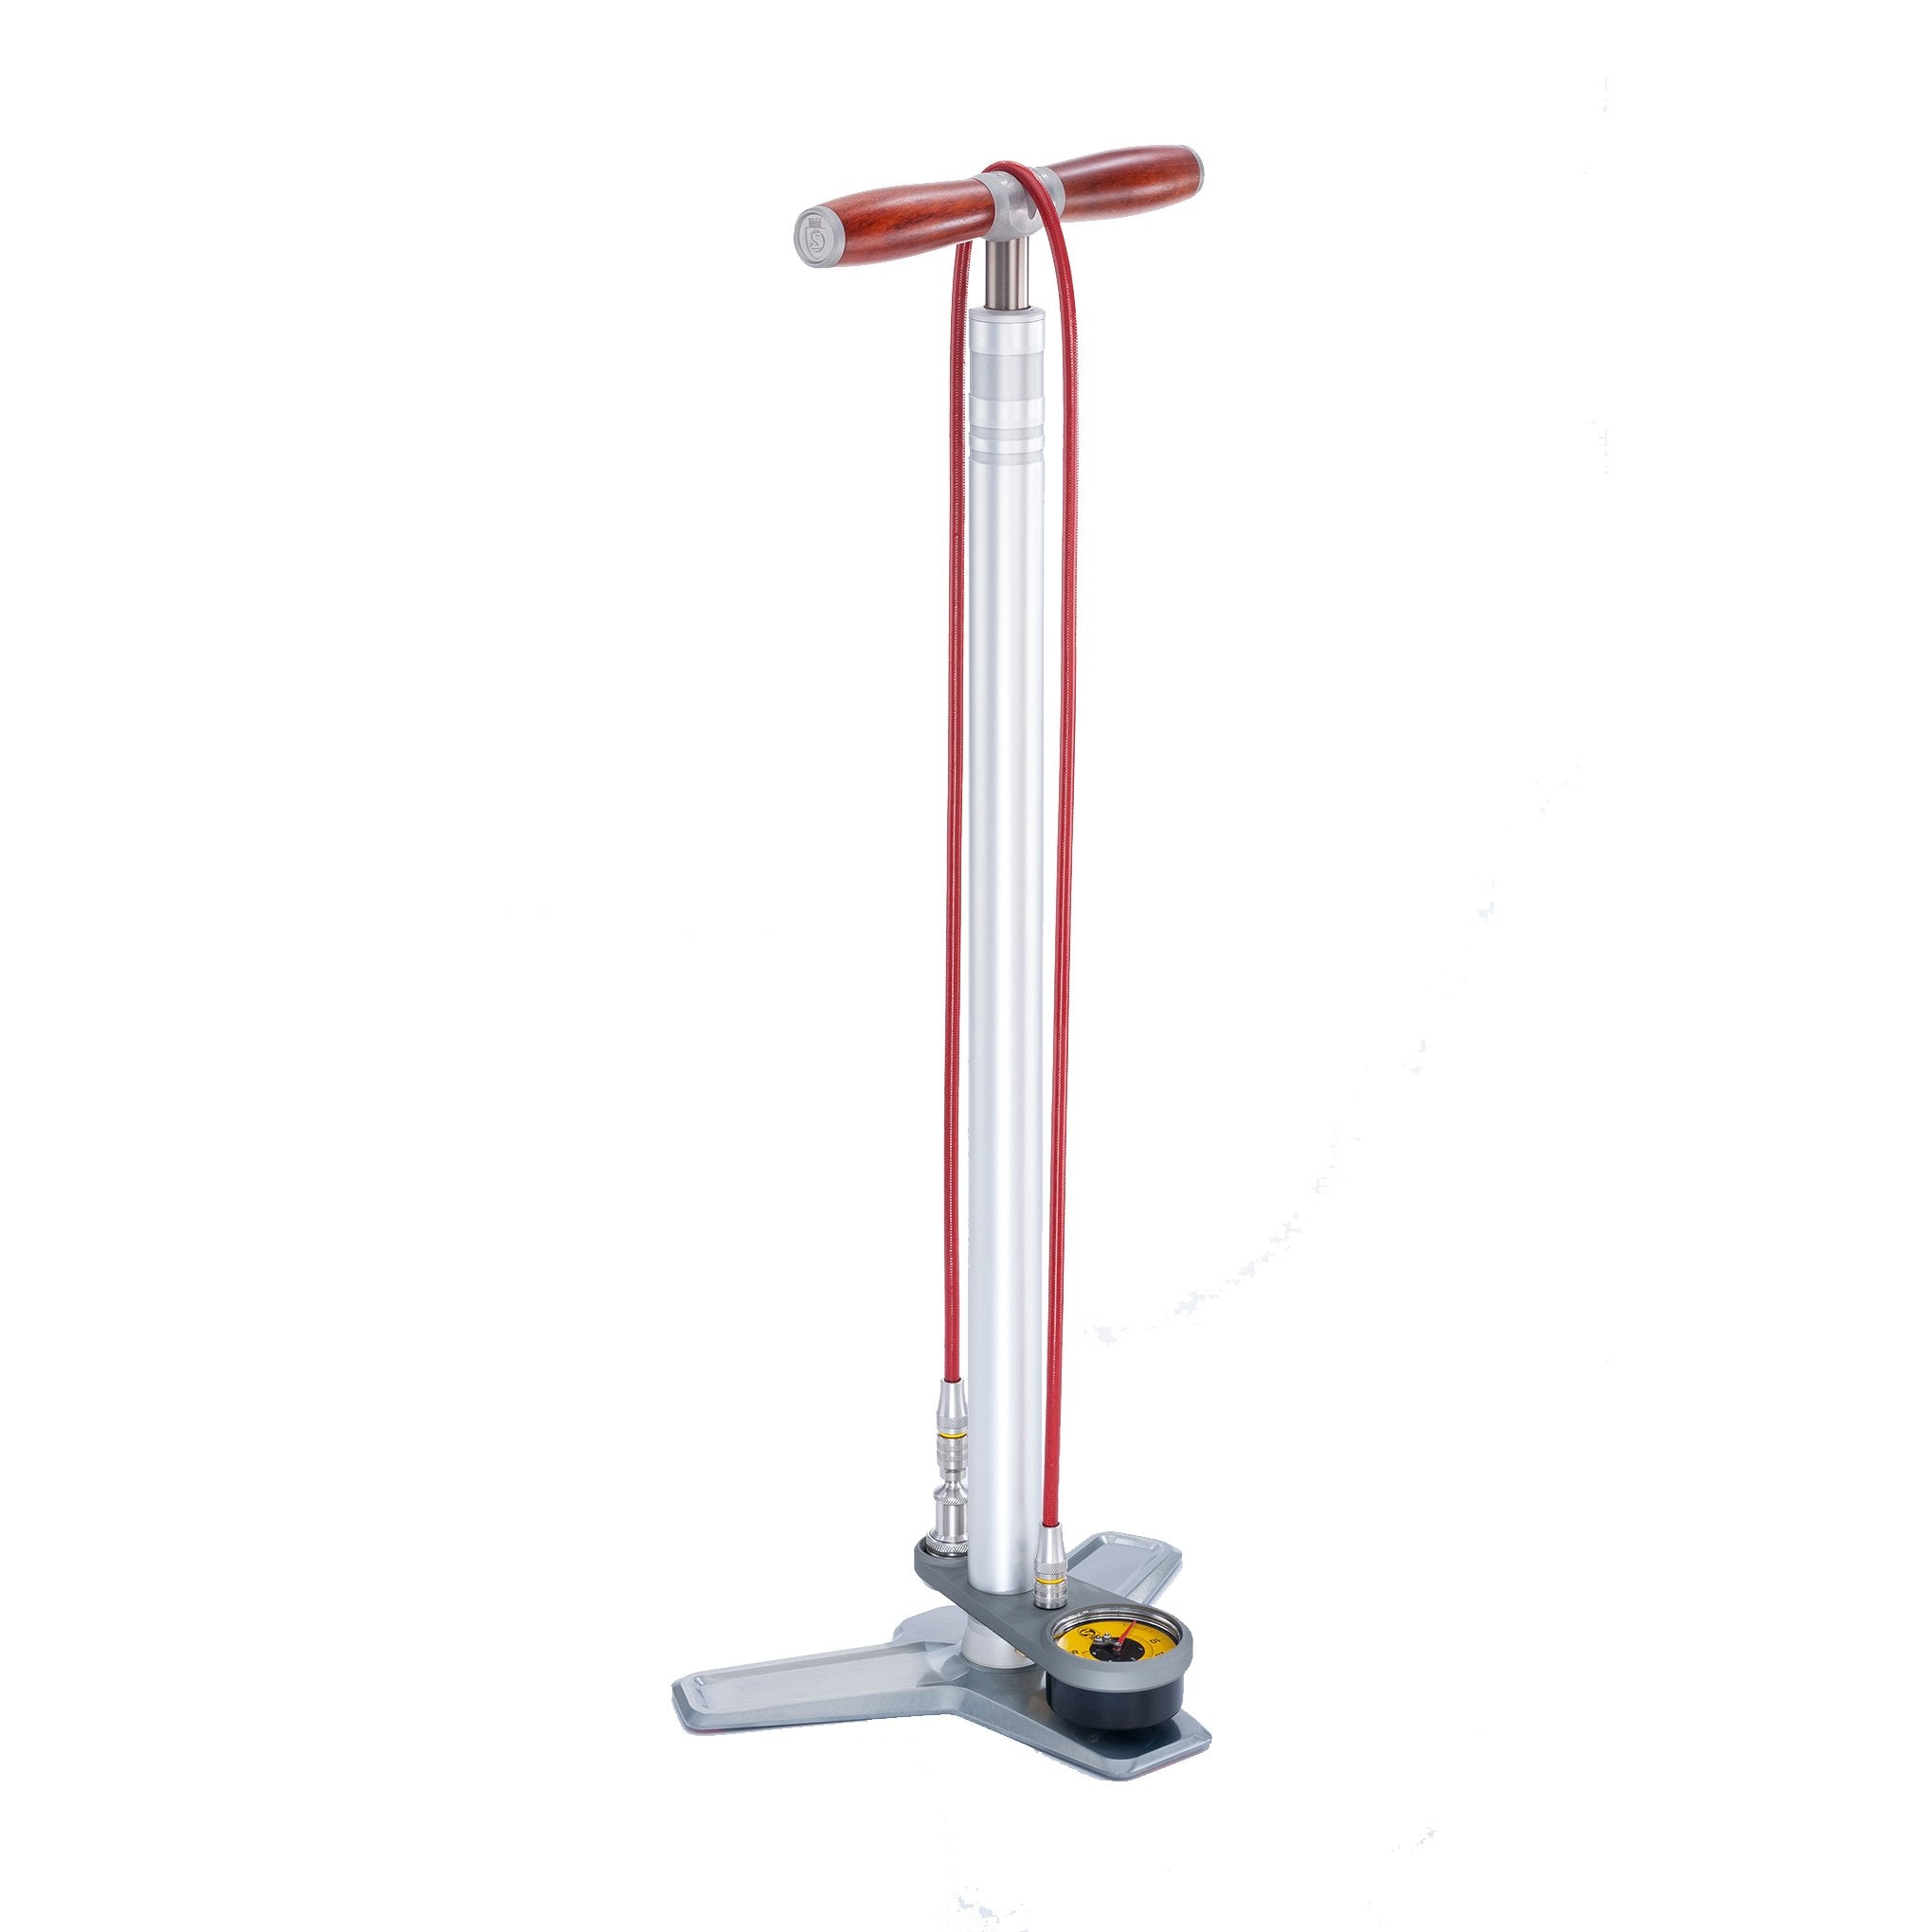 Super Pista Ultimate Floor Pump